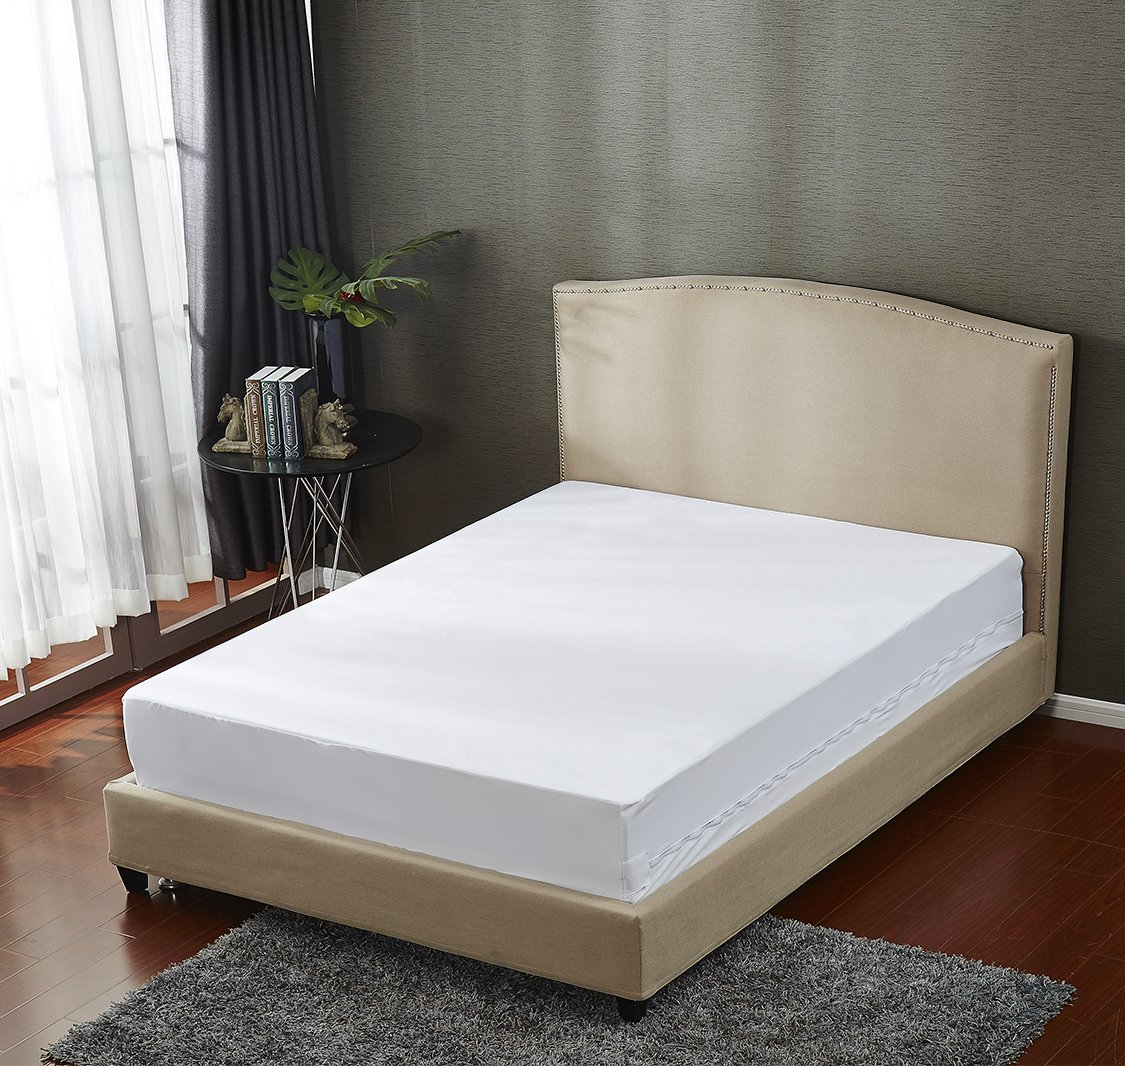 Mattress Protector Bedbug Waterproof Zippered Encasement Hypoallergenic Premium Quality Cover Protects Against Dust Mites Allergens